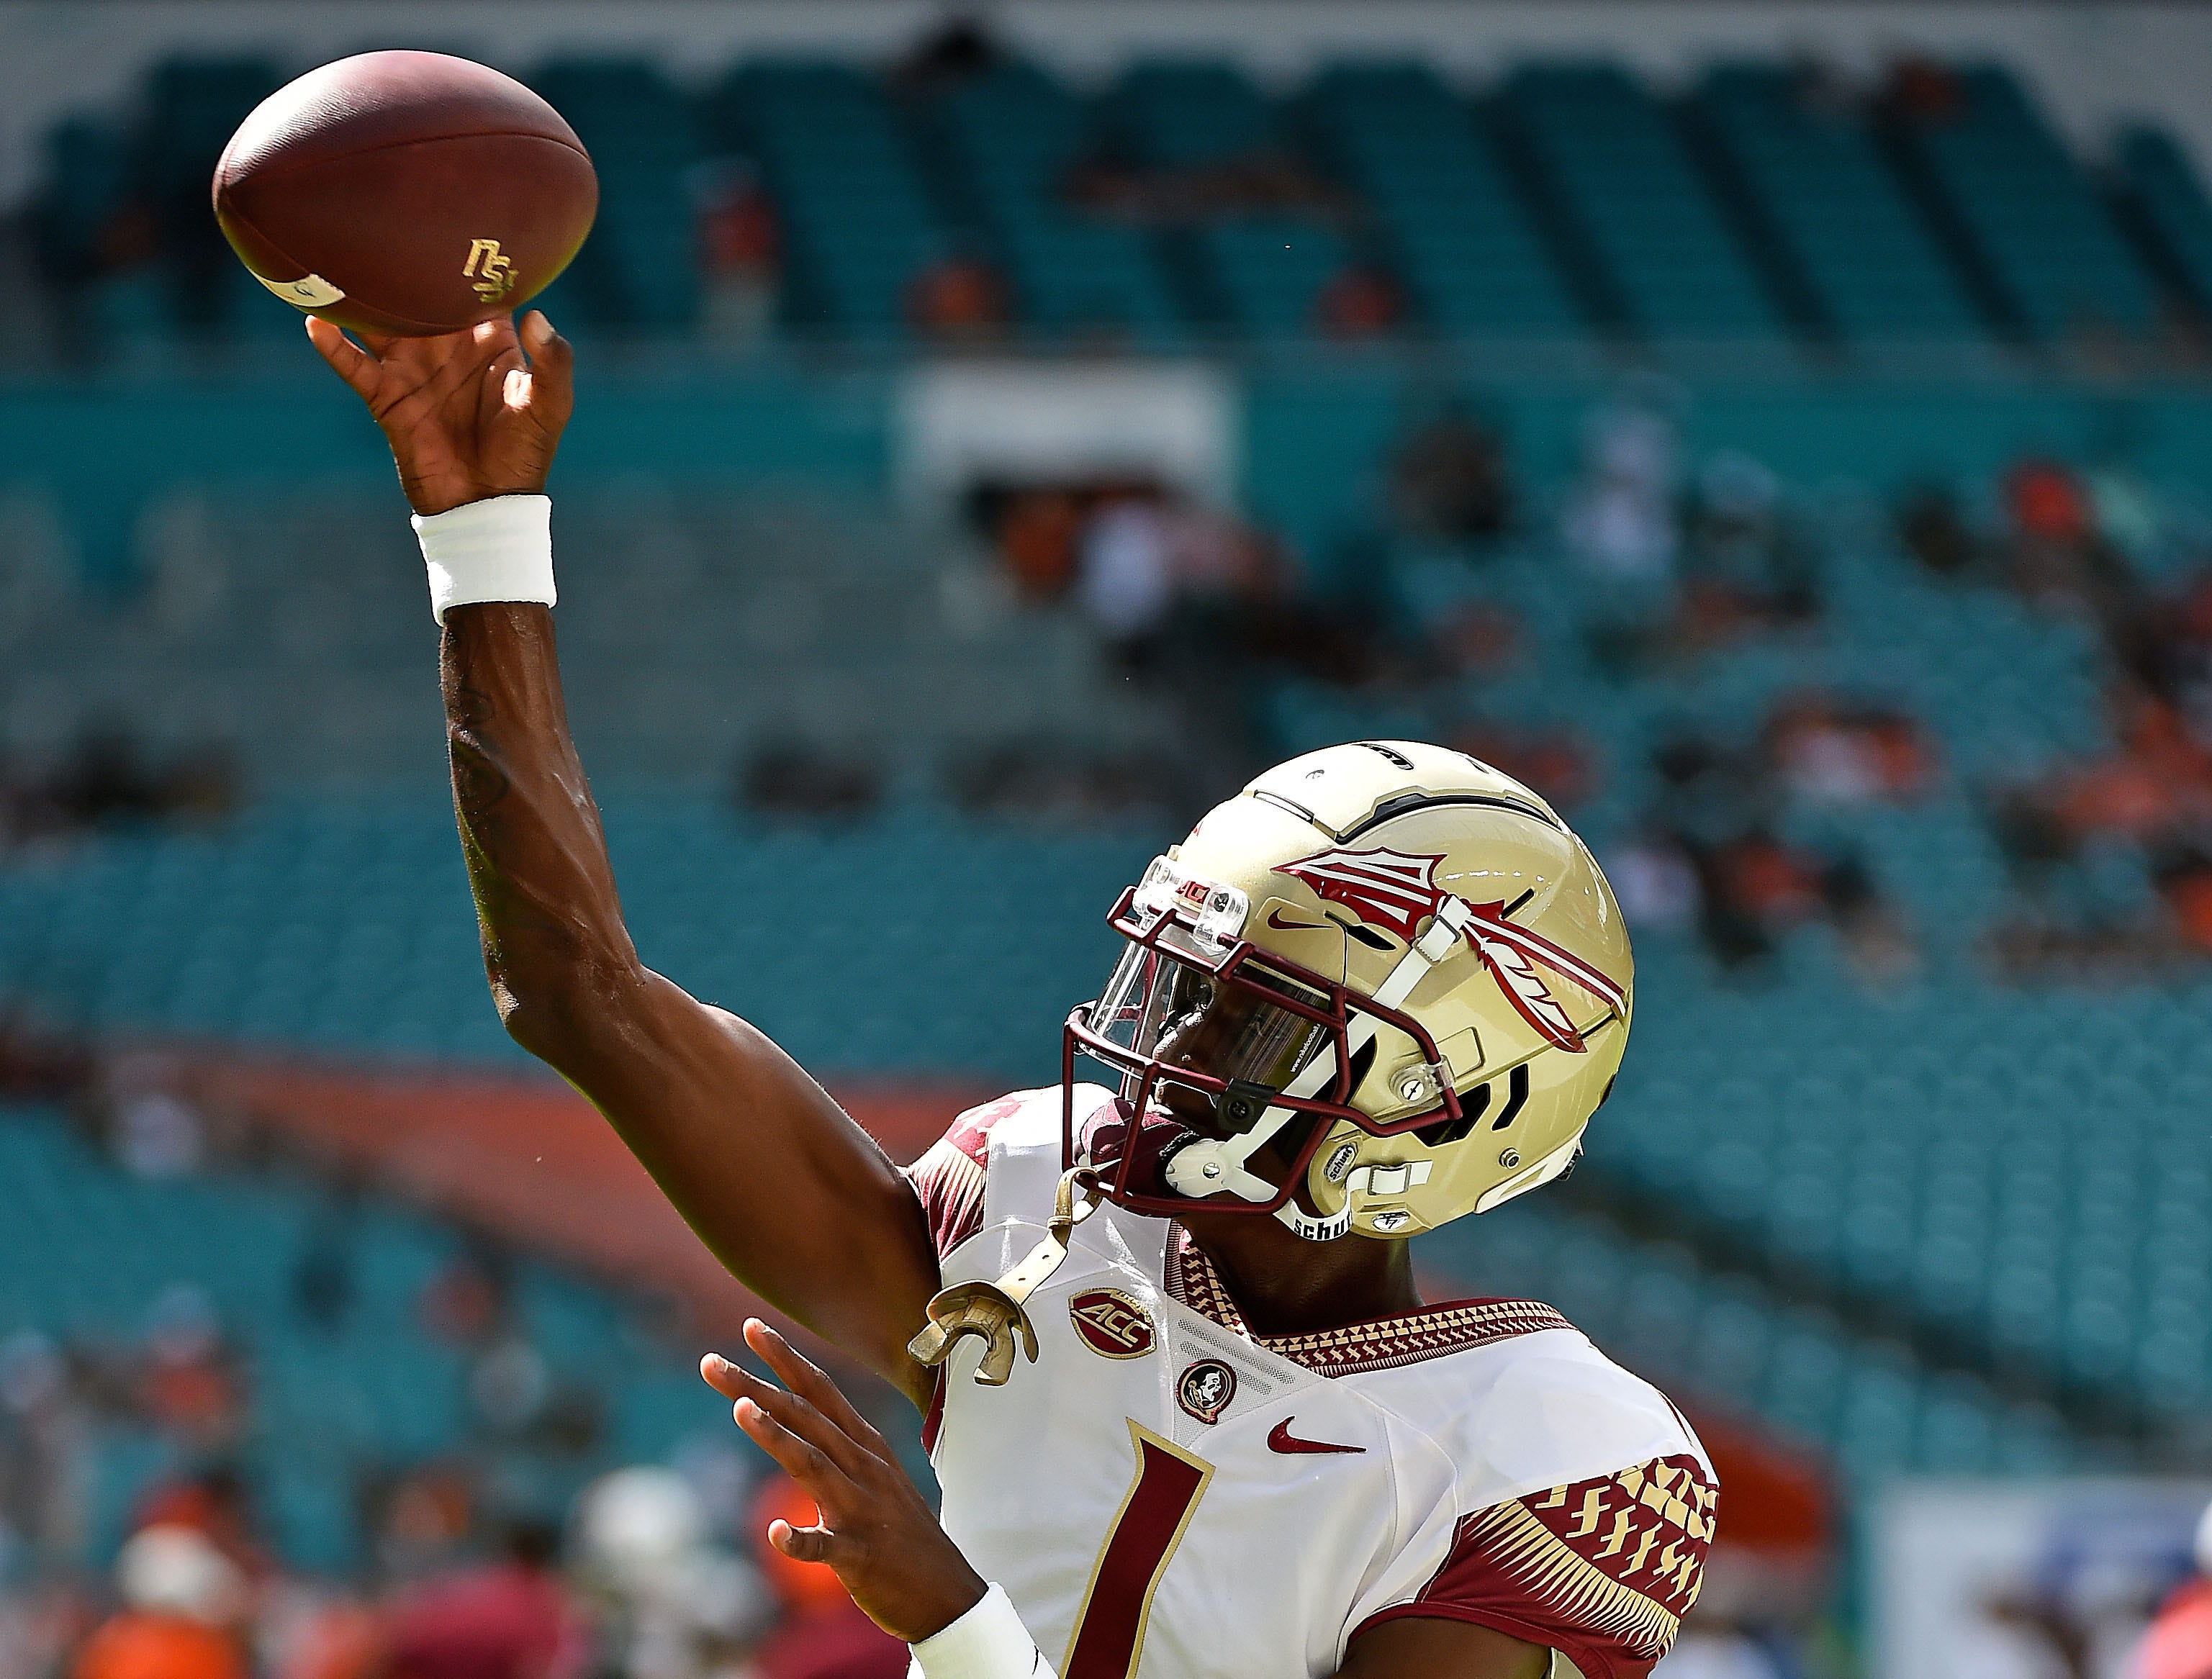 Oct 6, 2018; Miami Gardens, FL, USA; Florida State Seminoles quarterback James Blackman (1) warms up prior to the game against the Miami Hurricanes at Hard Rock Stadium. Mandatory Credit: Jasen Vinlove-USA TODAY Sports